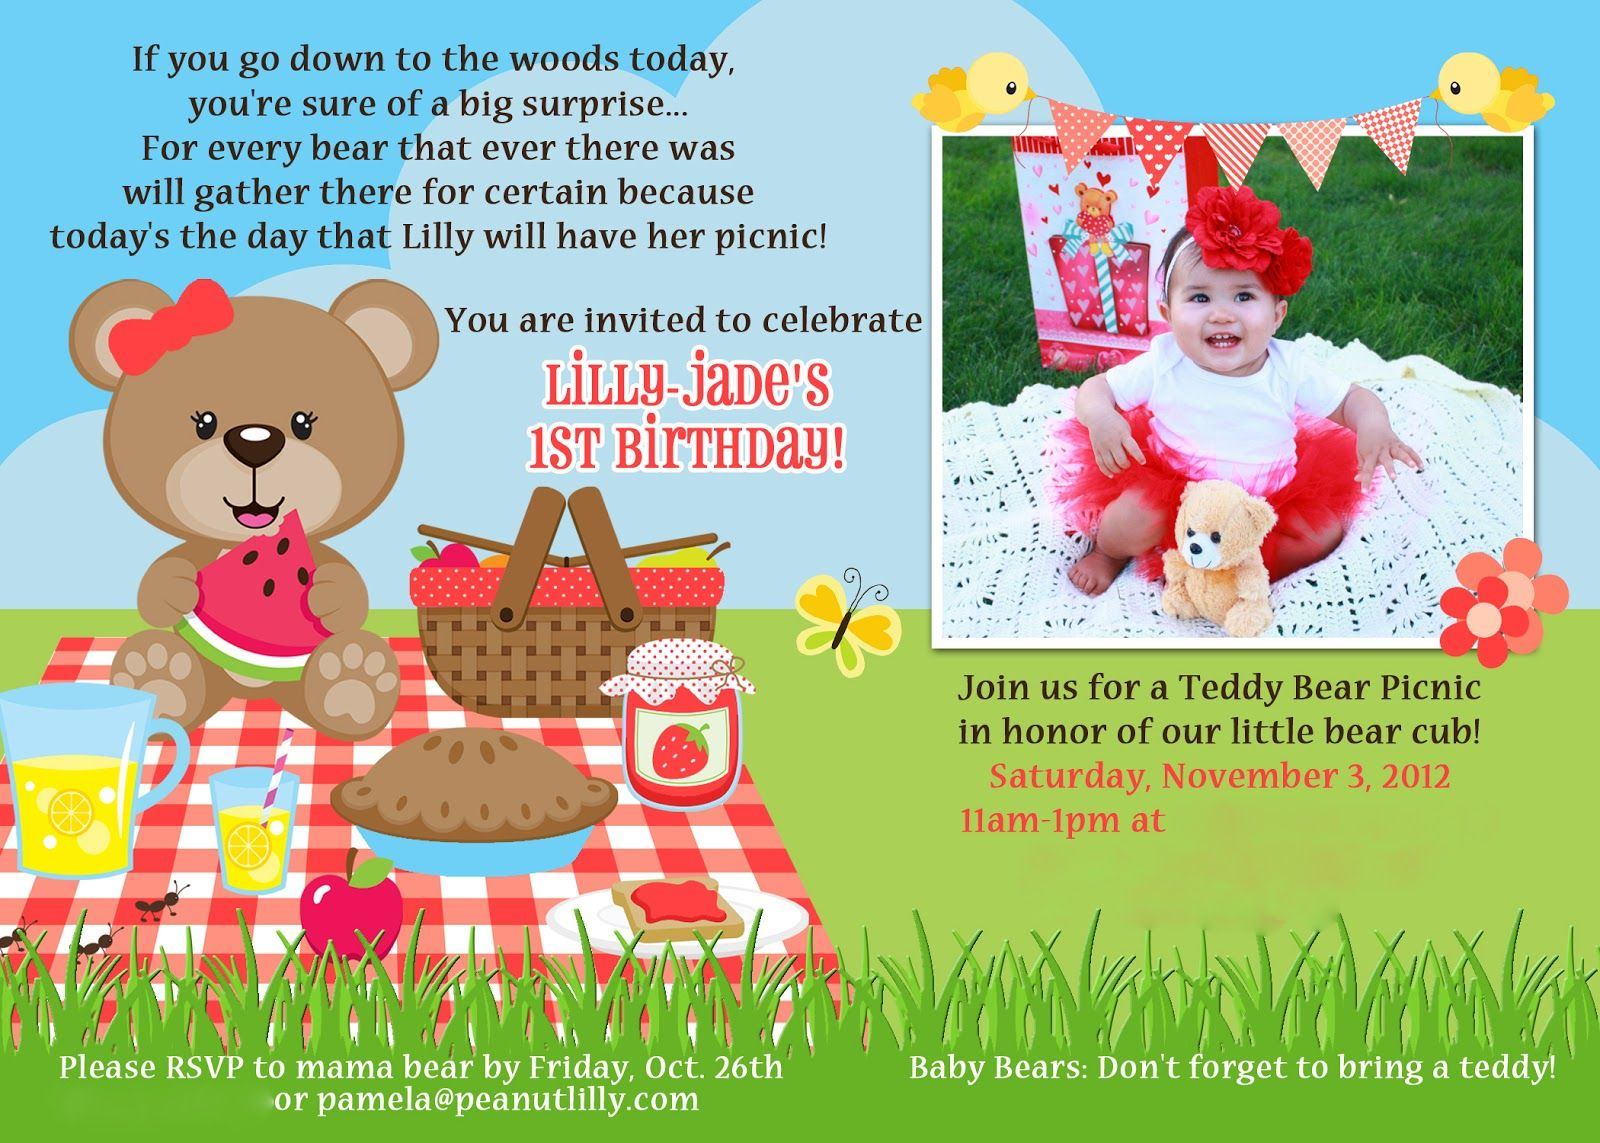 Teddy Bear Picnic Party Invites Macdonald39s Playland Lilly39s 1st ...